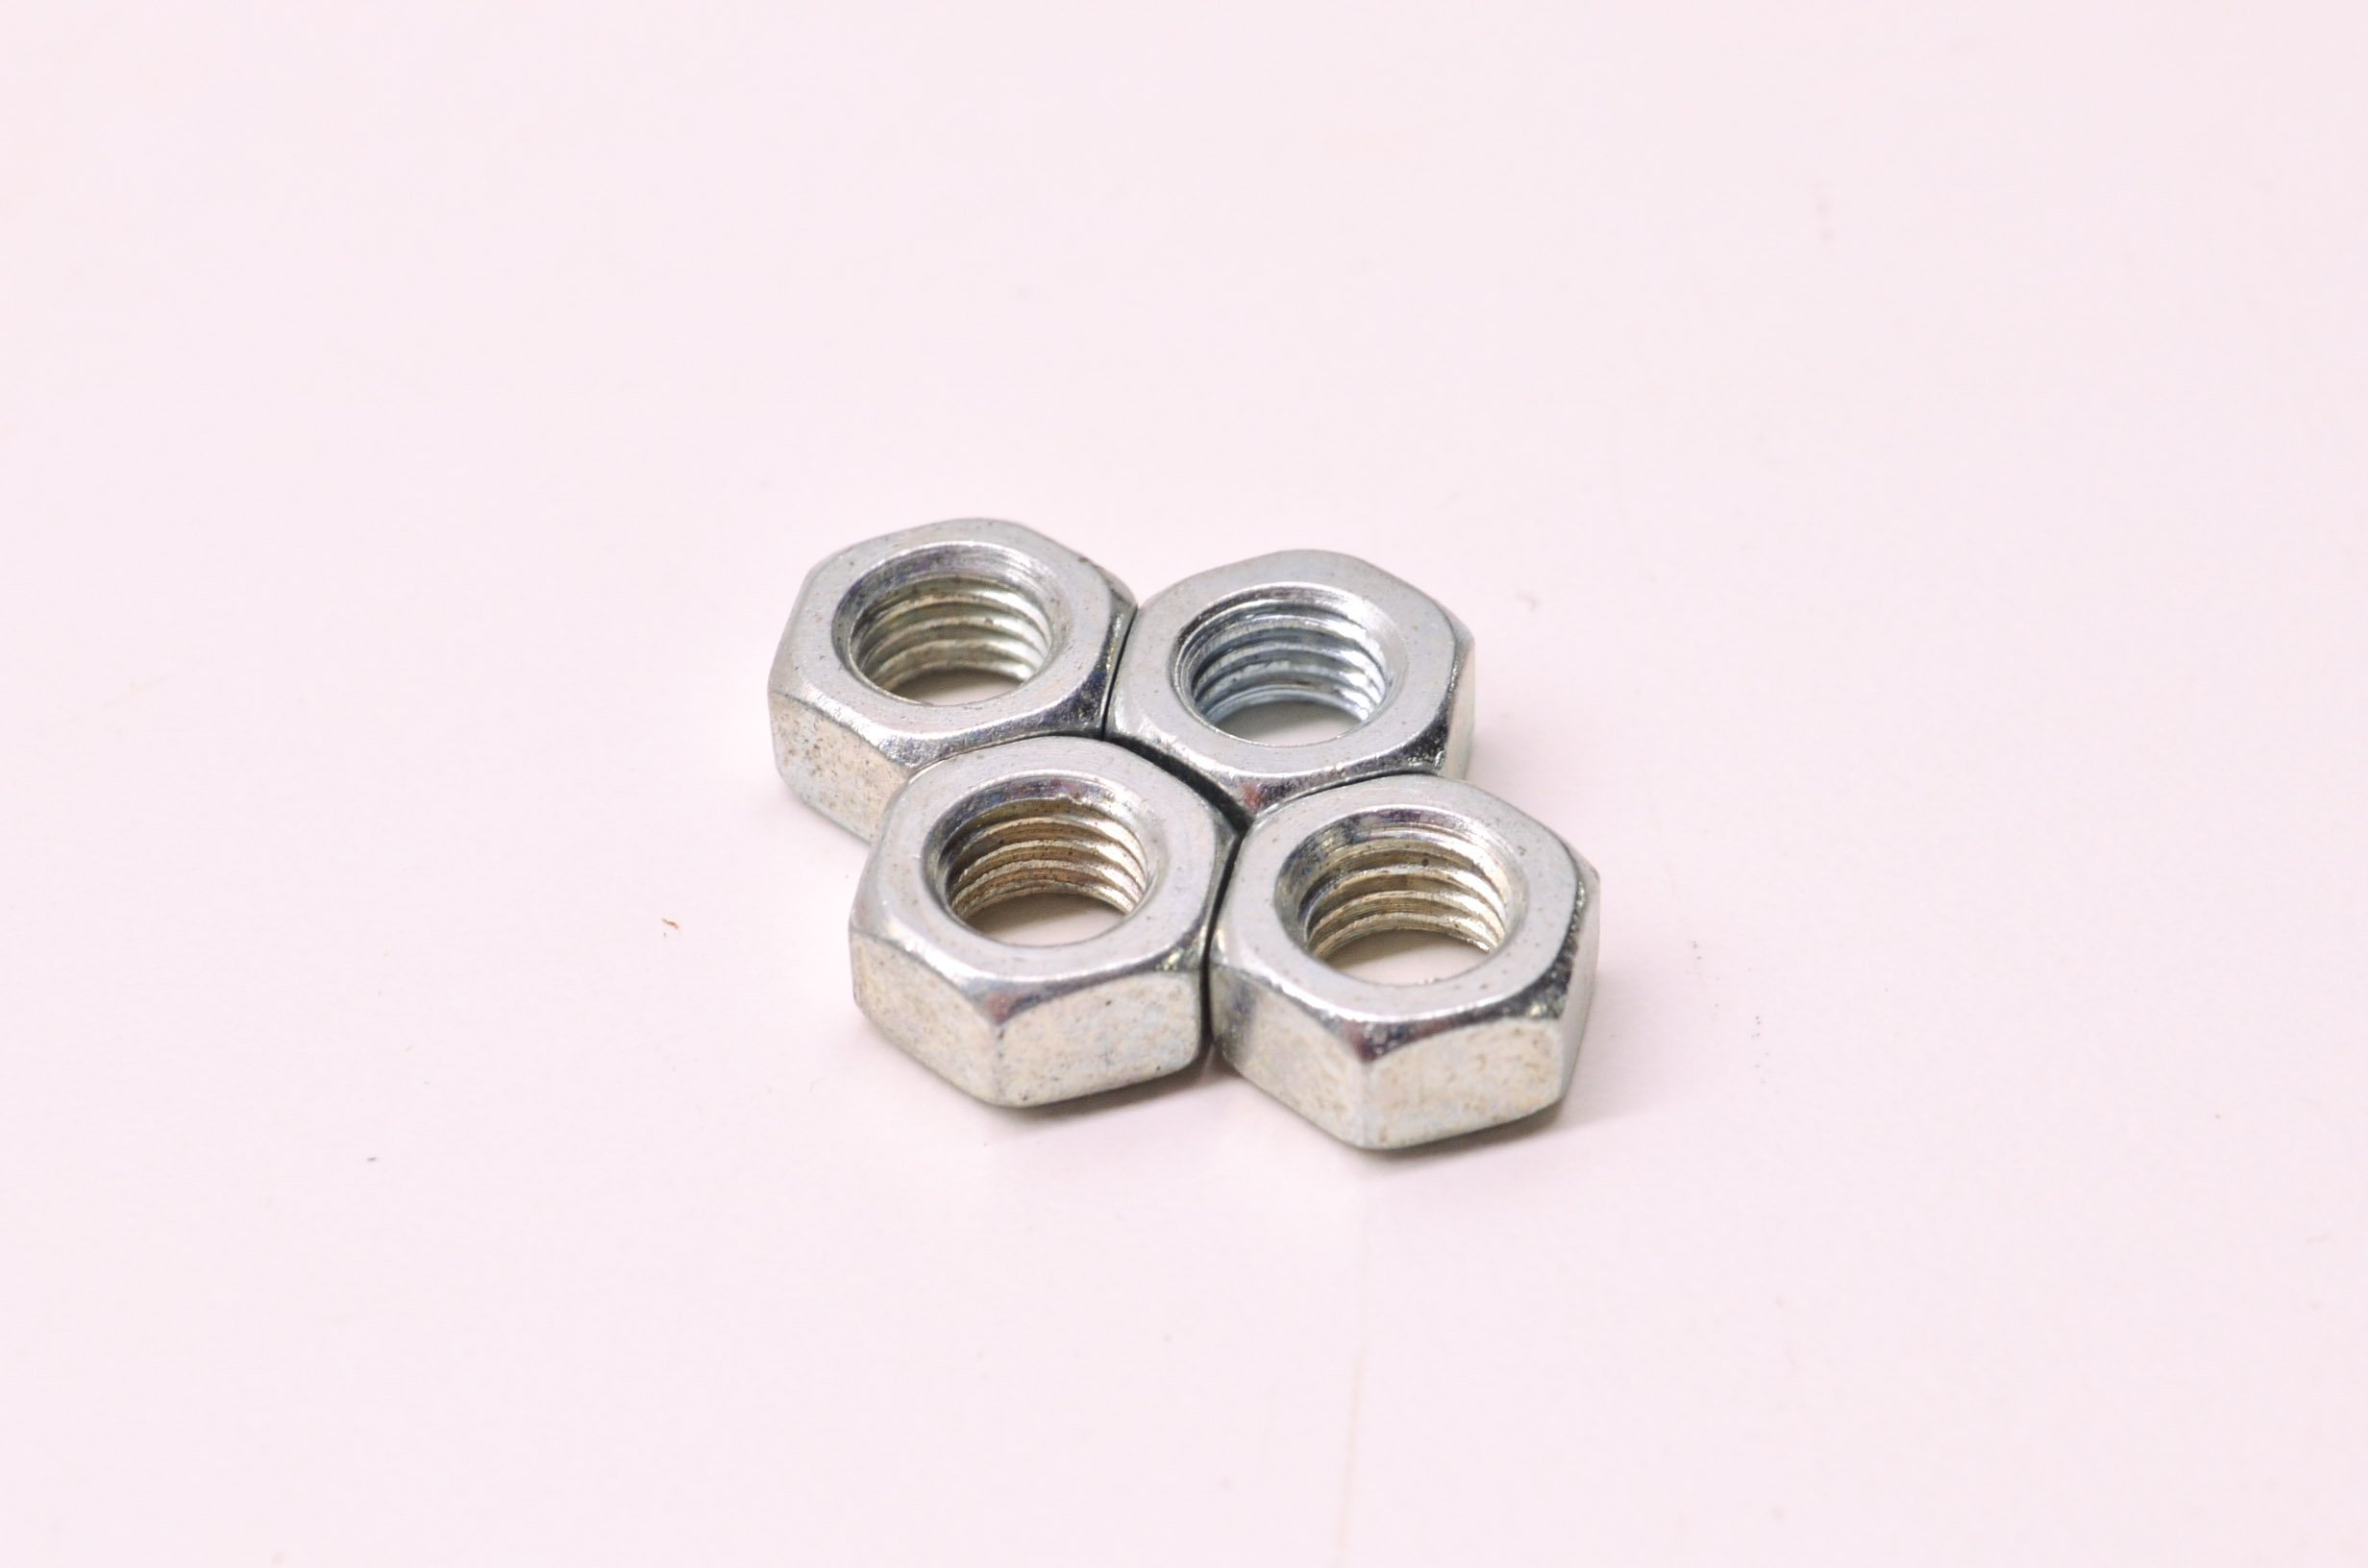 KTM 934070003 Hexagon Nut QTY 4